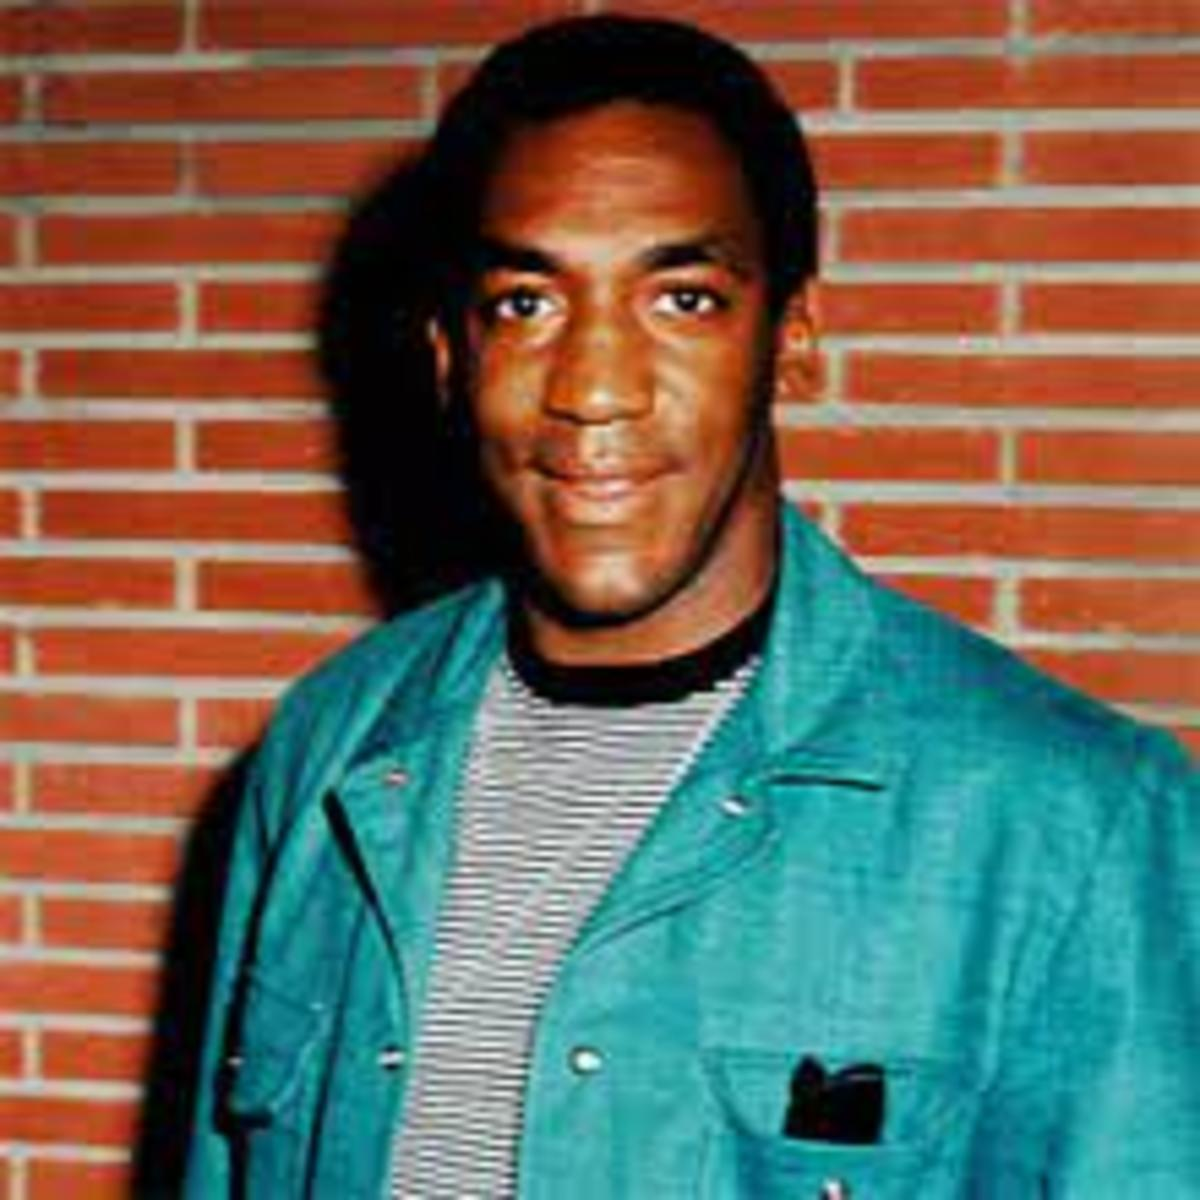 Cosby in his 20's